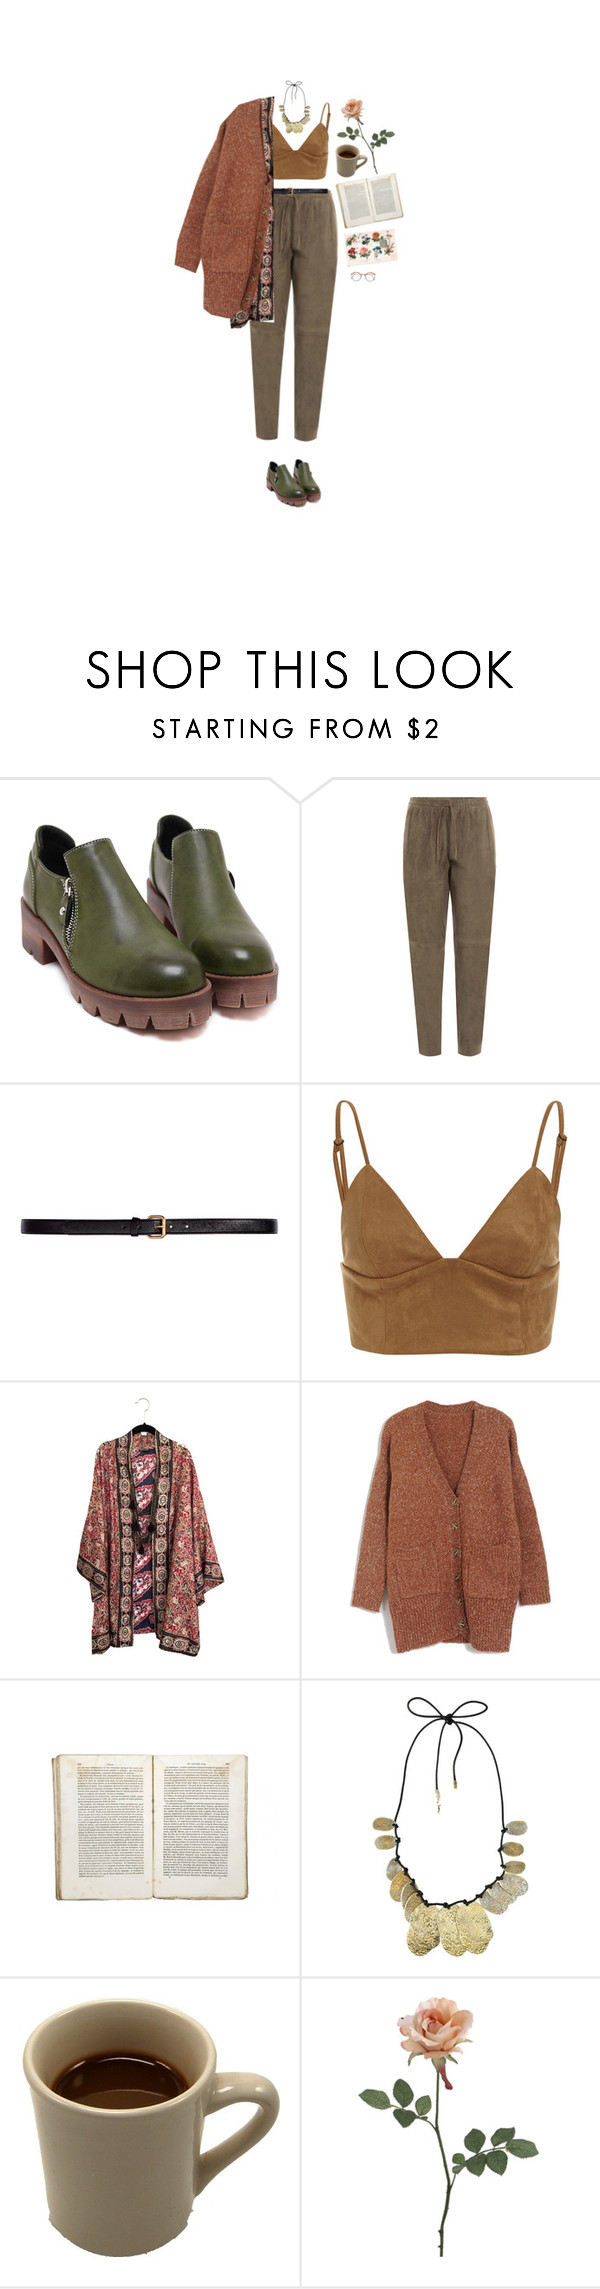 """jäädään kiinni ikuisuuteen"" by hetasdfghjkl ❤ liked on Polyvore featuring Joseph, H&M, Jayson Home and Yves Saint Laurent"